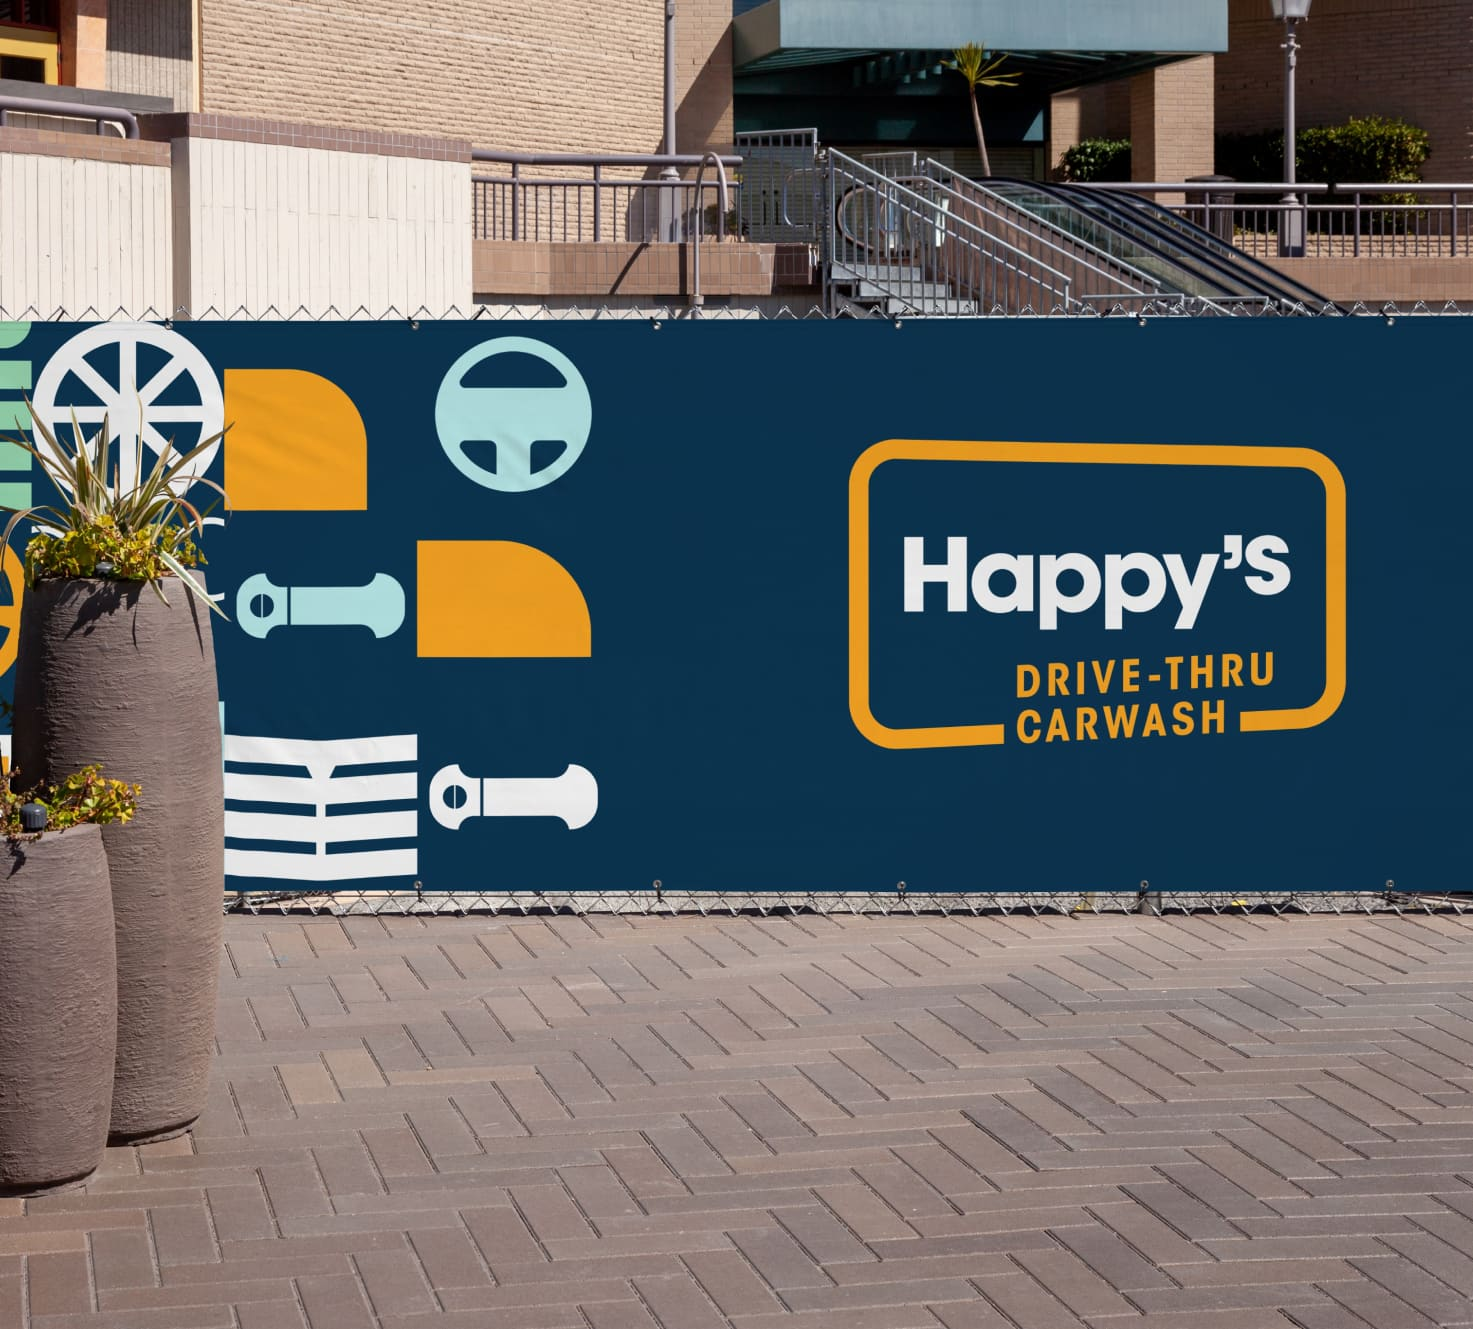 A mockup showing the Happy's Car Wash on a wall decal.